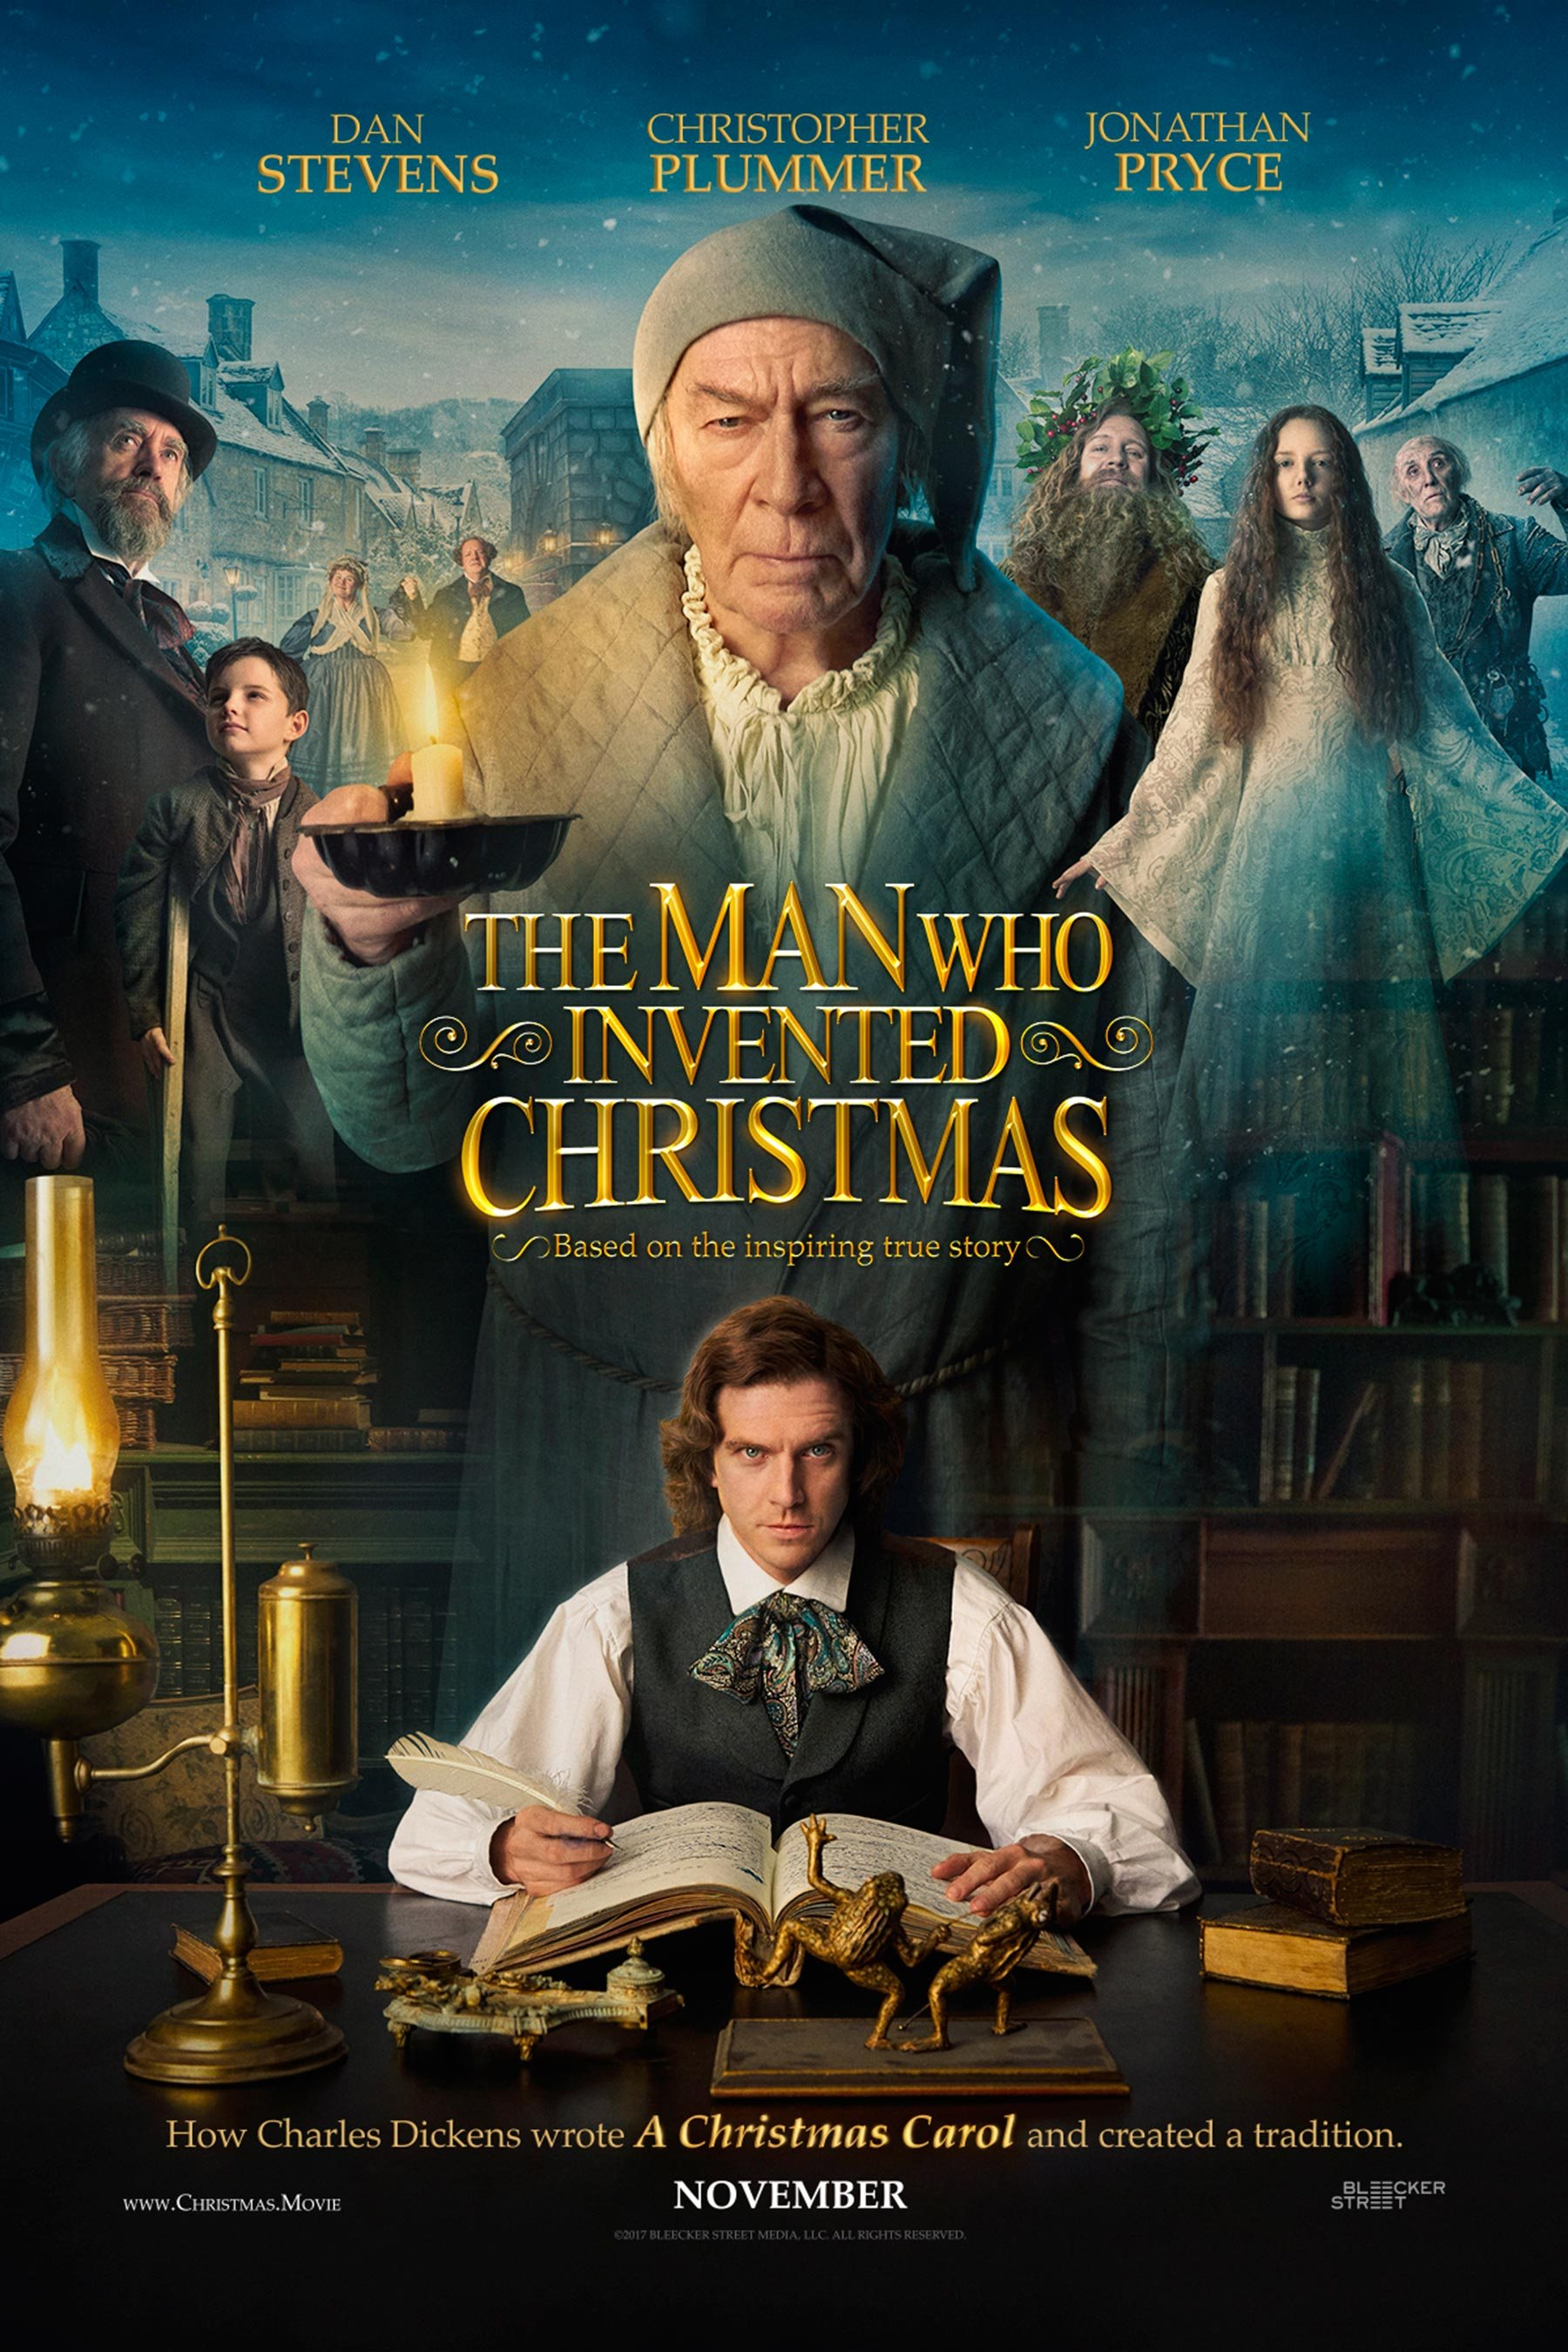 The Man Who Invented Christmas is in theaters November 22, 2017.